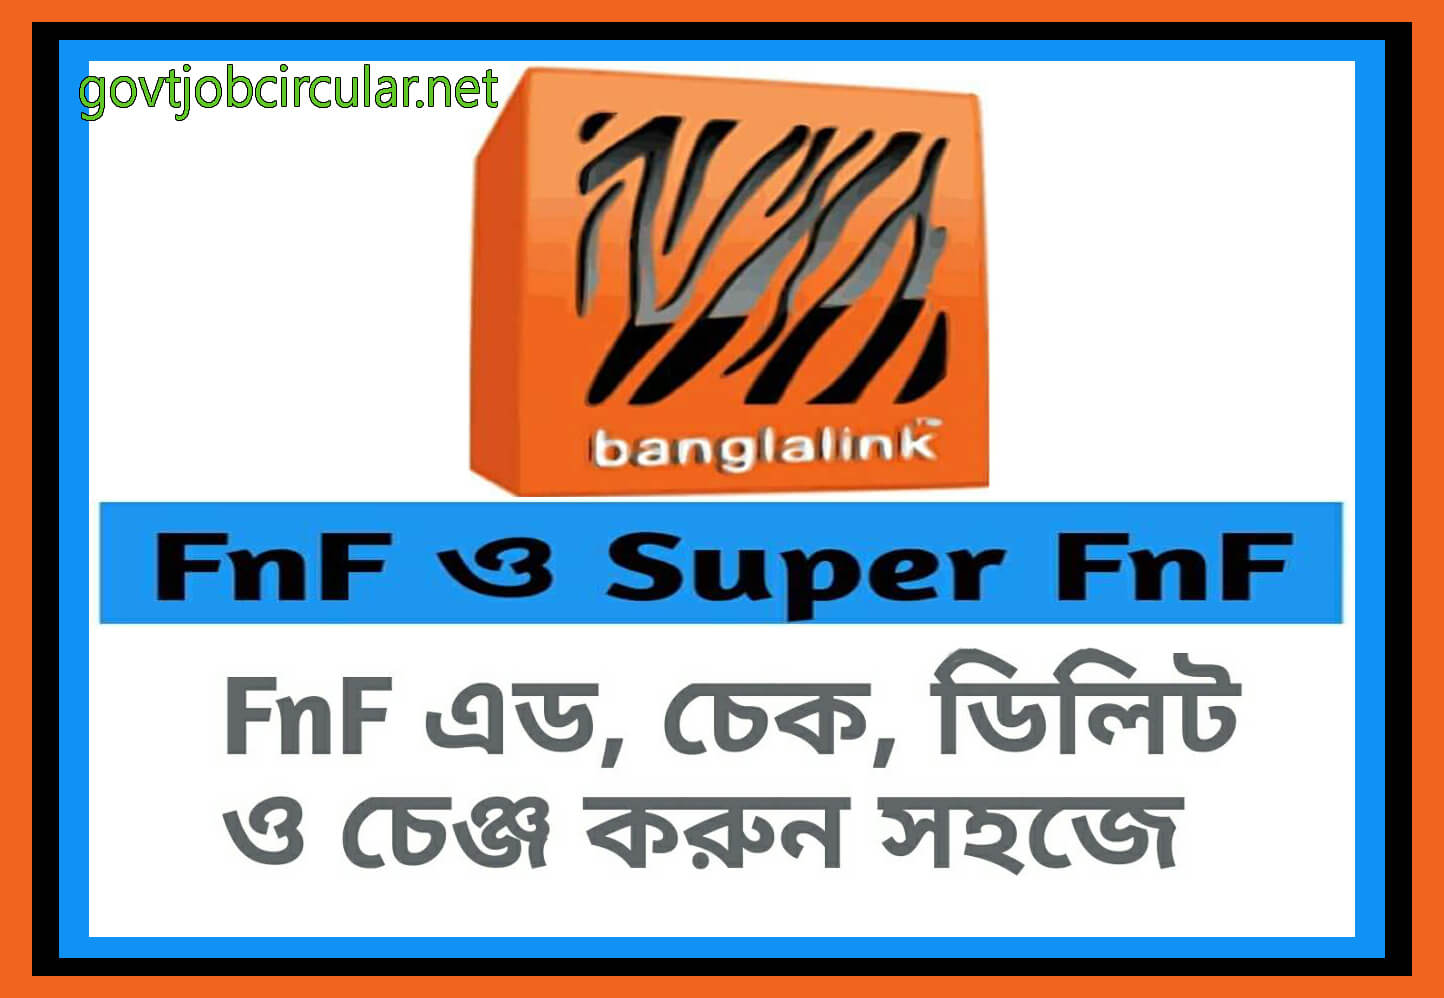 HOW TO CHECK / ADD / CHANGE / SUPER FNF / DELETE FNF NUMBERS FOR BANGLALINK USERS